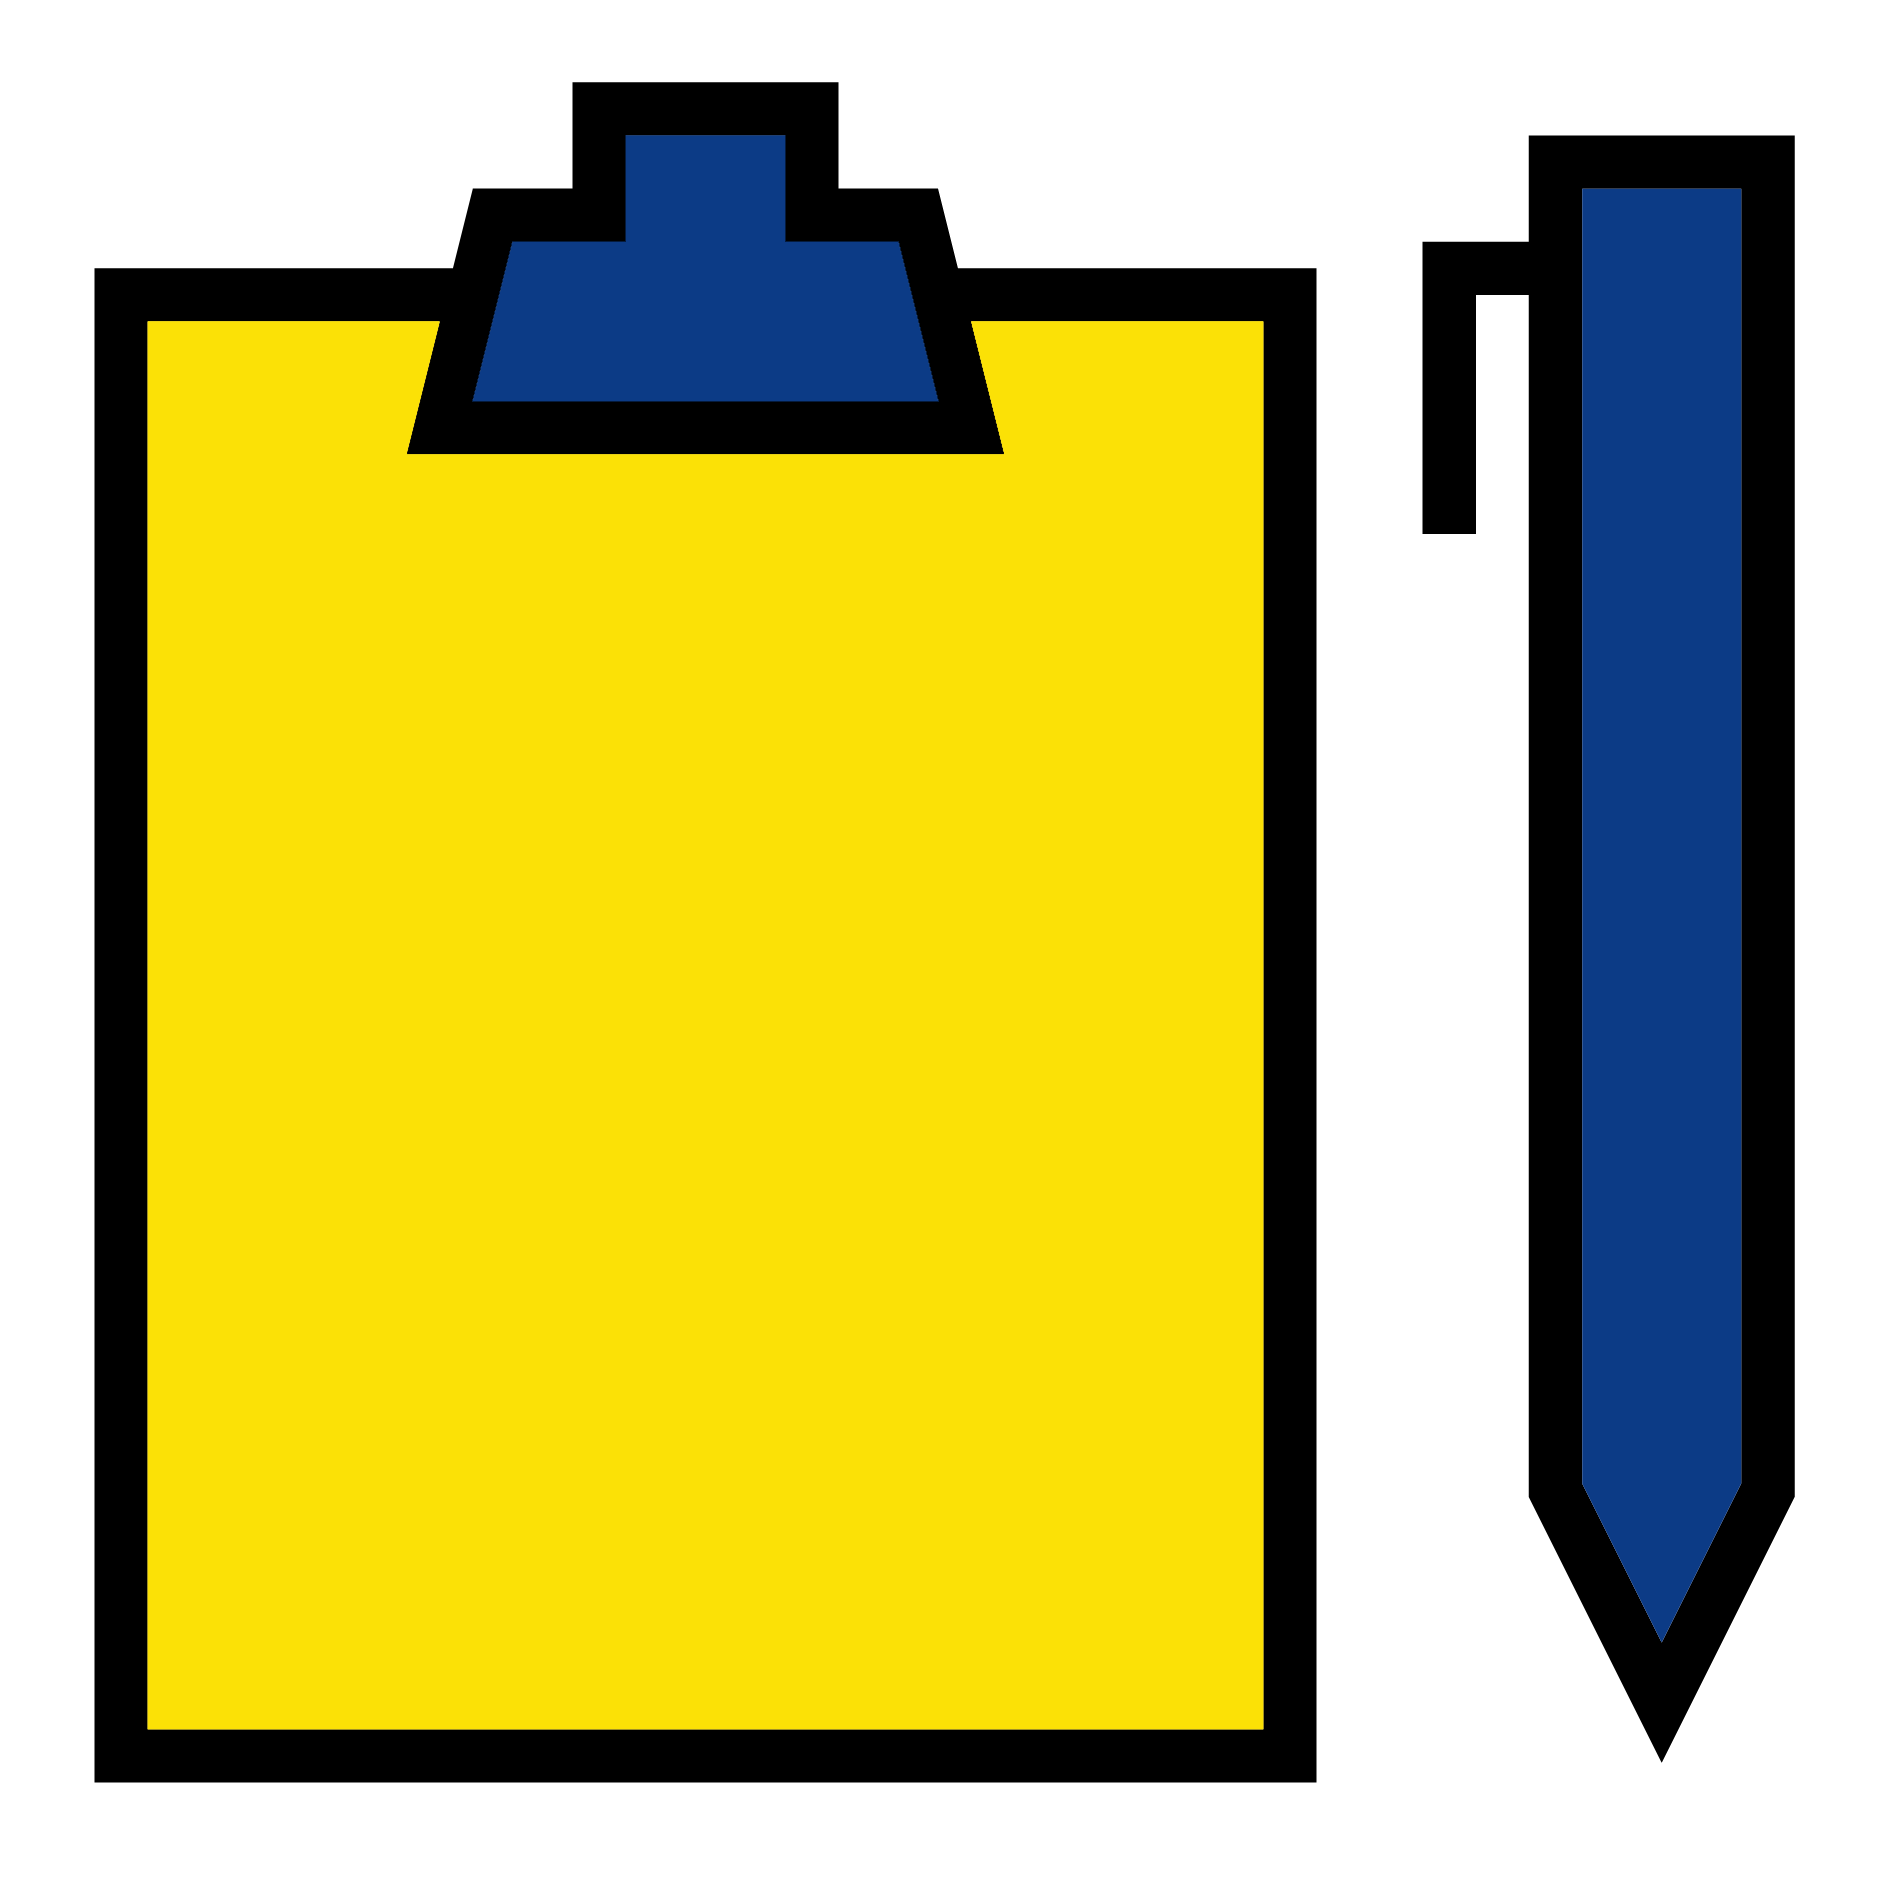 blue and yellow graphic of a clipboard and pen